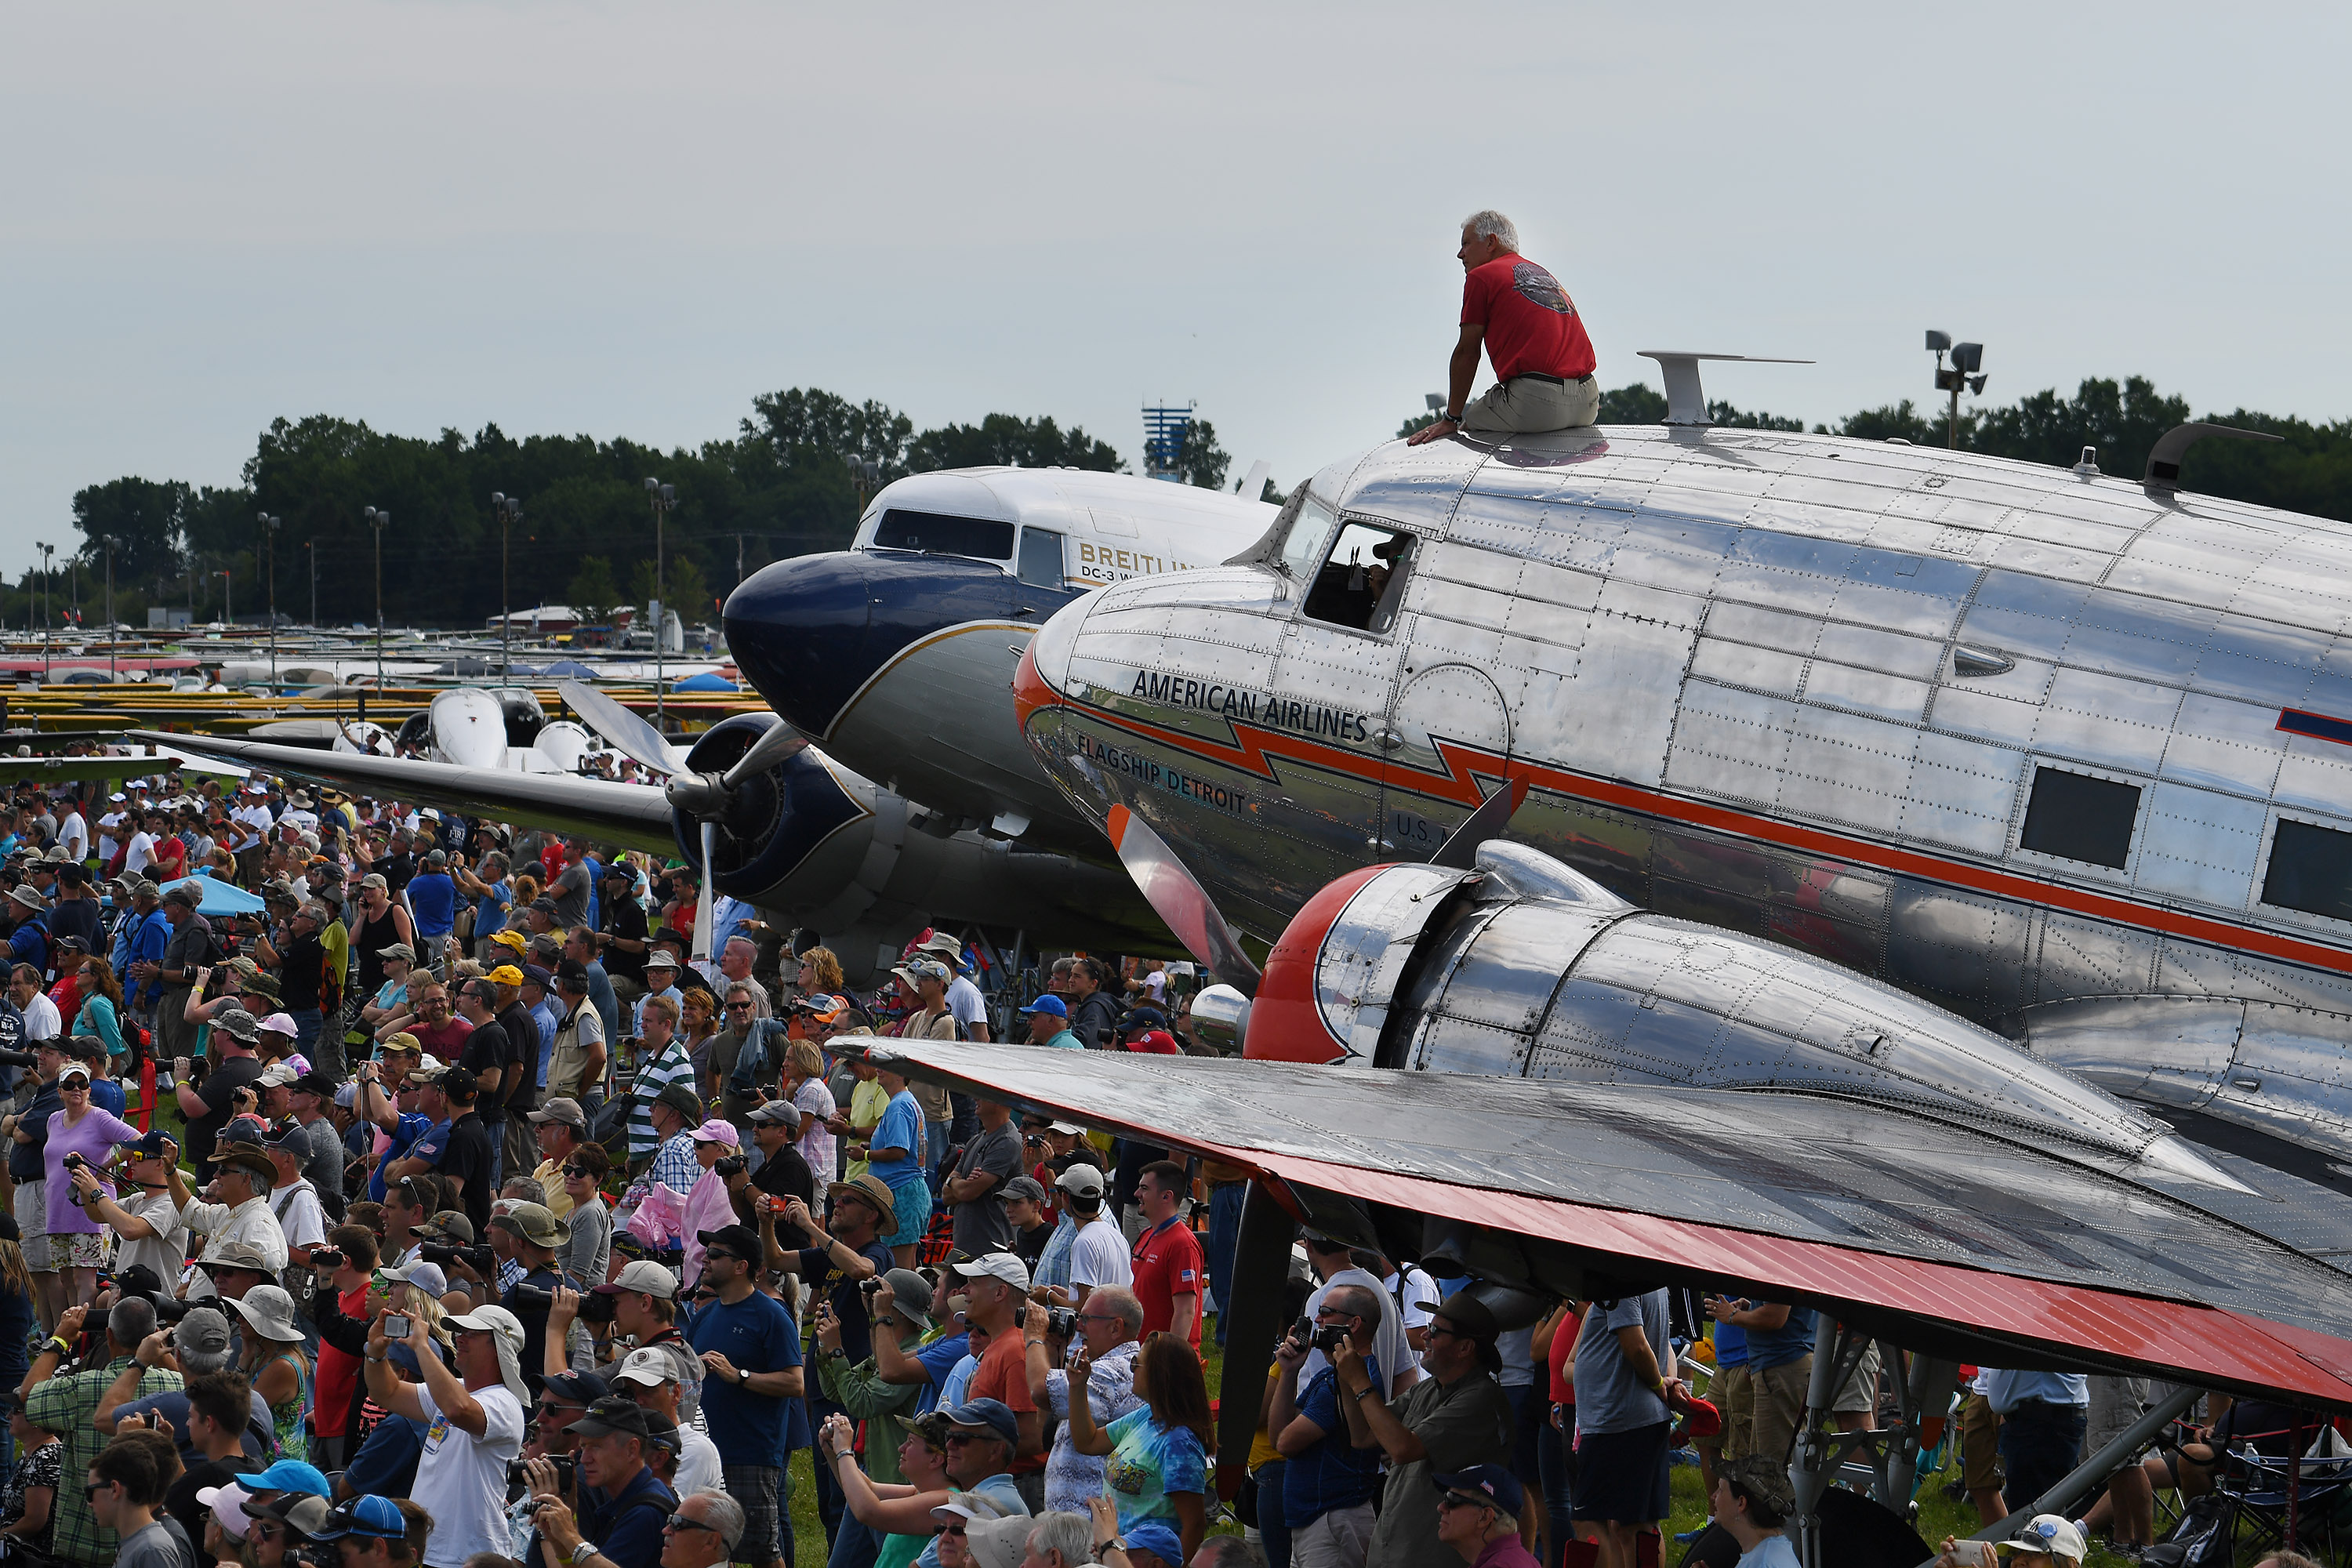 Large crowds gather near DC-3s to watch the afternoon airshow at EAA AirVenture in Oshkosh, Wisconsin, July 25. Photo by David Tulis.